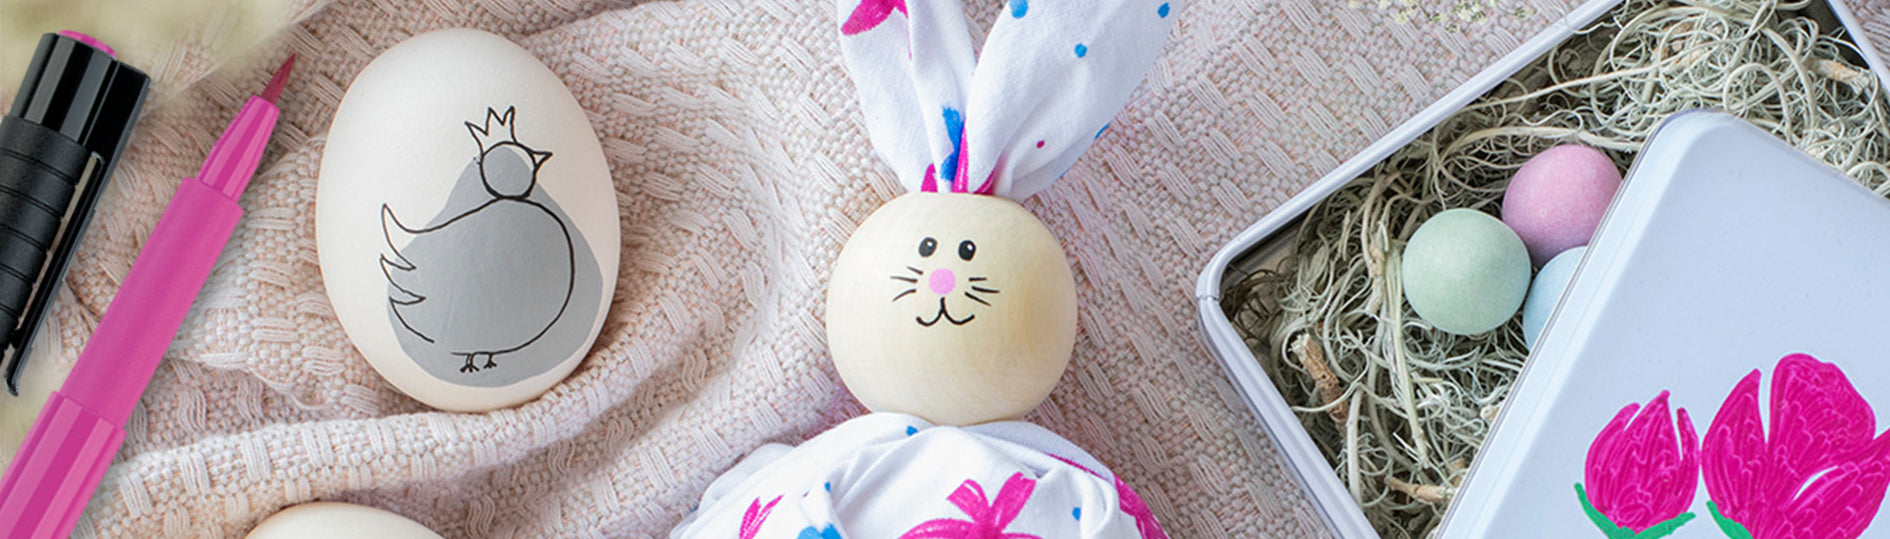 Easter Bunny and Egg Art